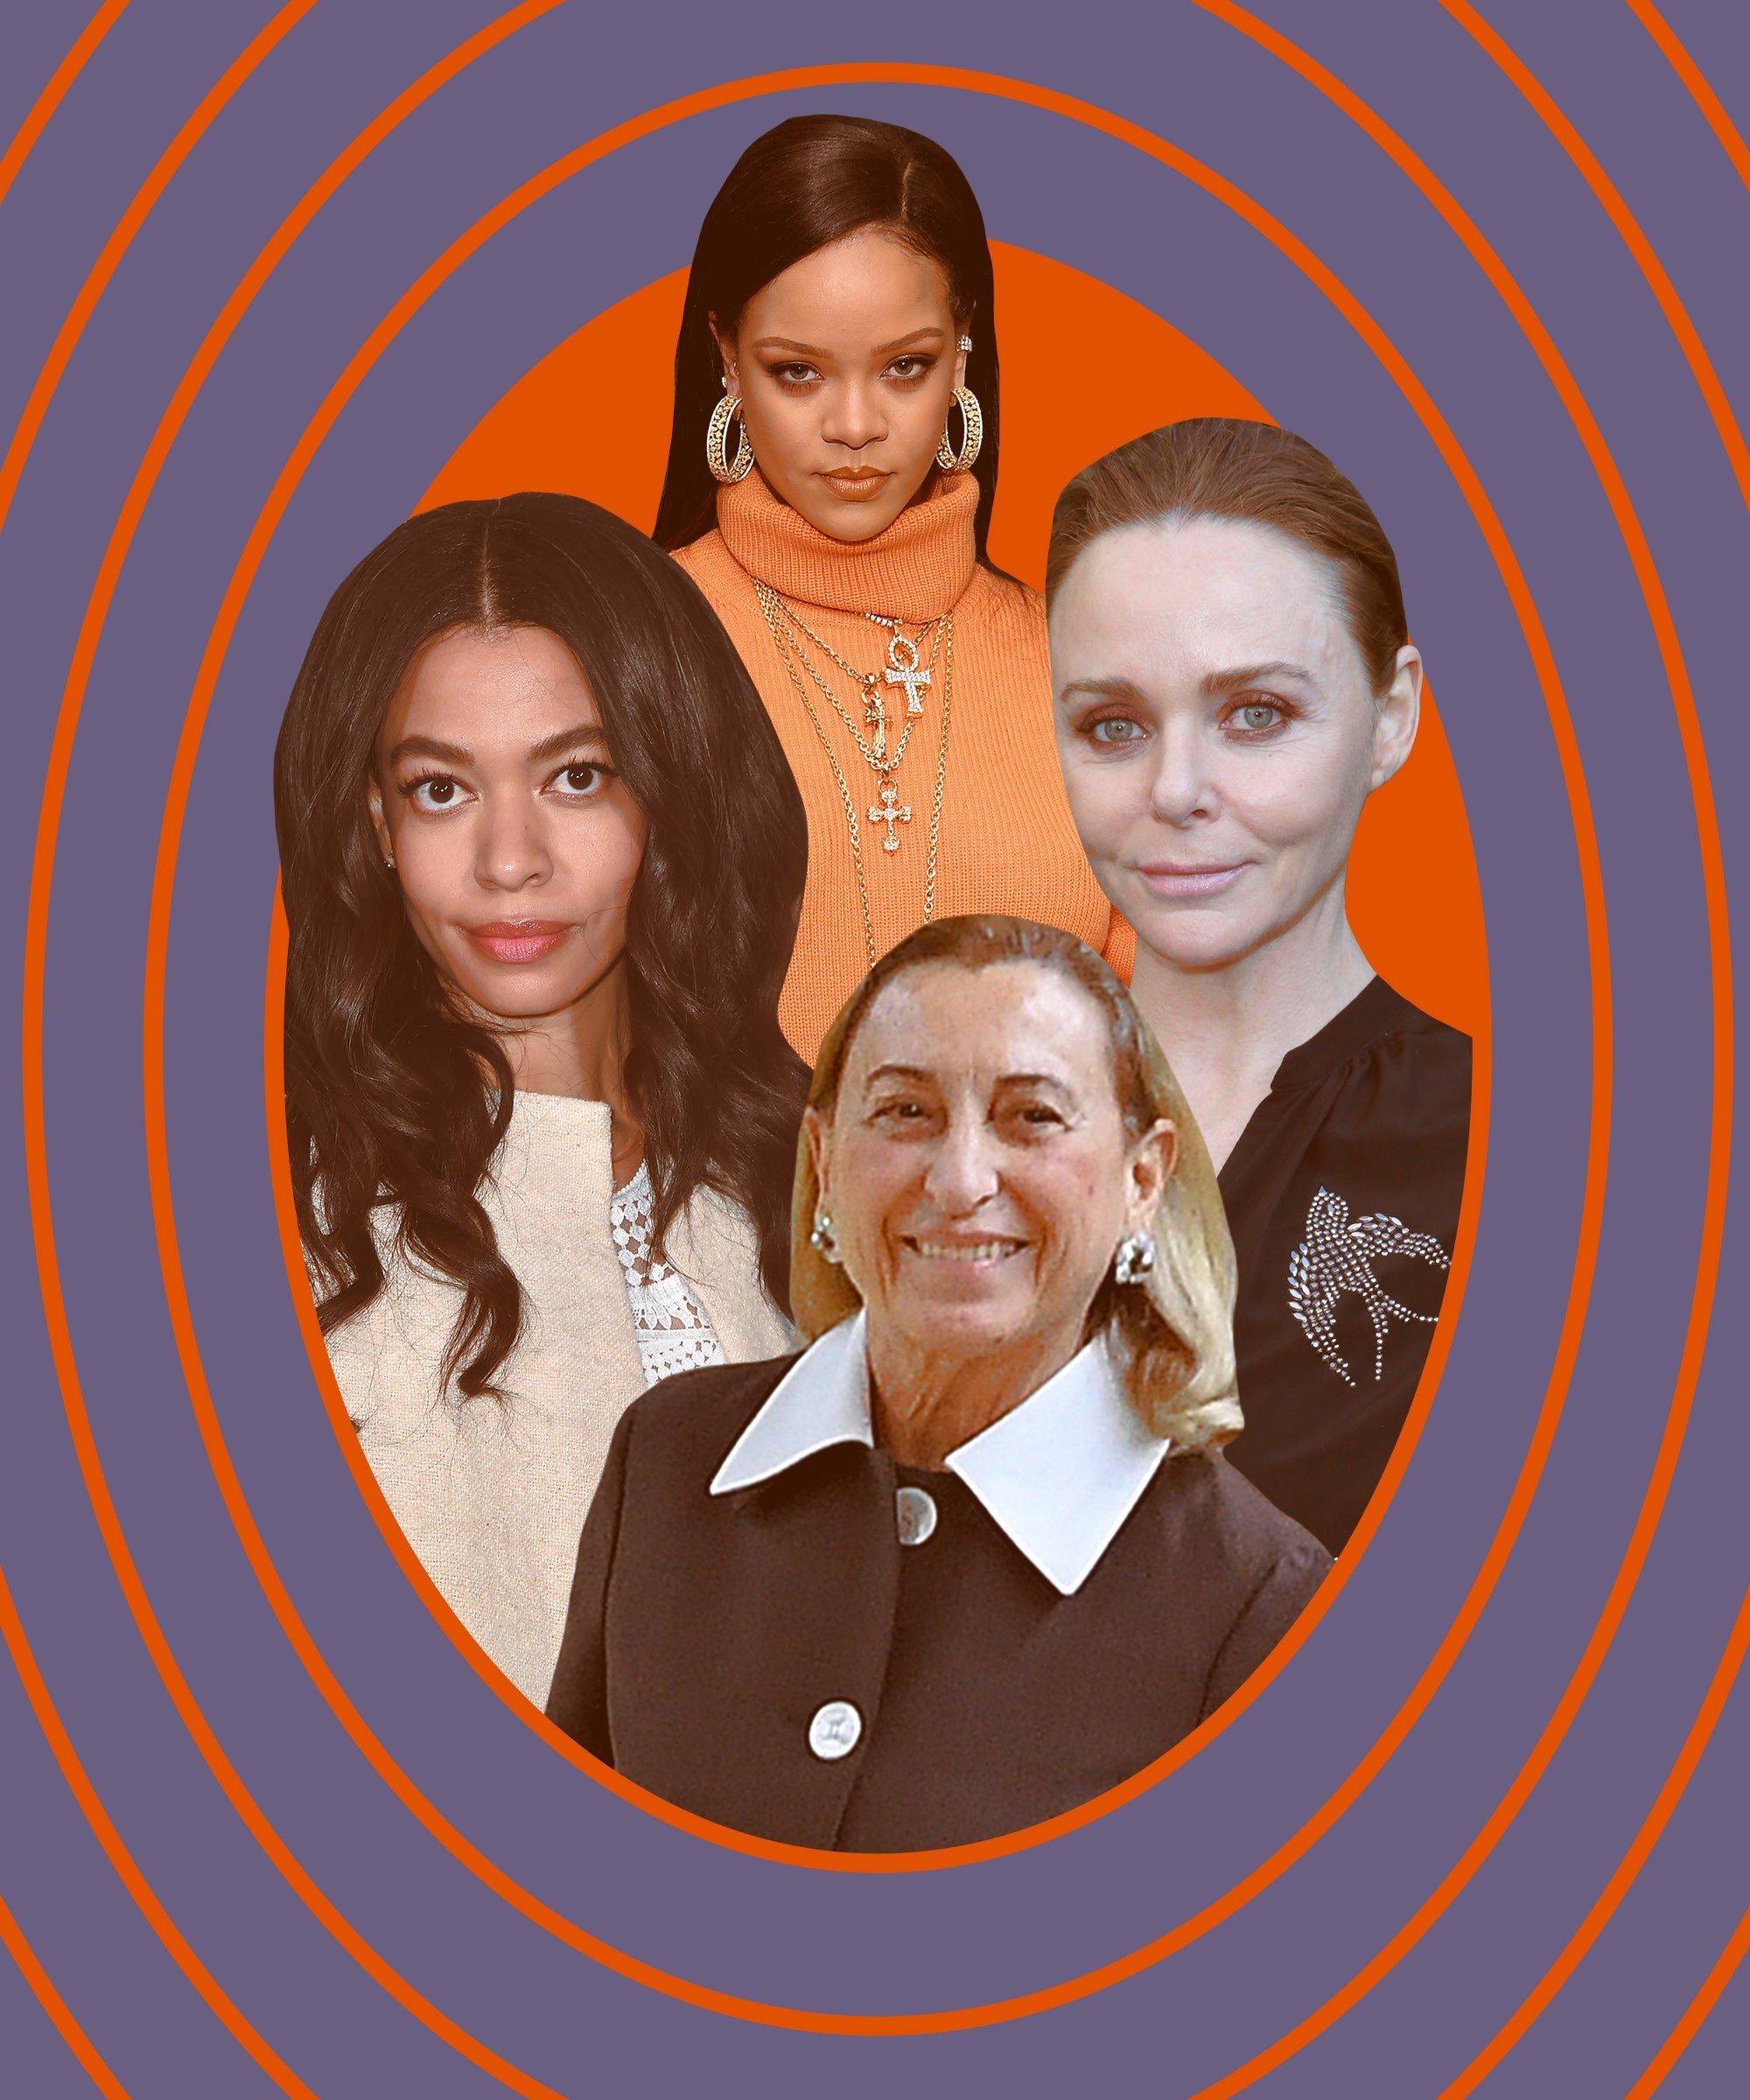 The Most Influential Female Fashion Designers In 2020